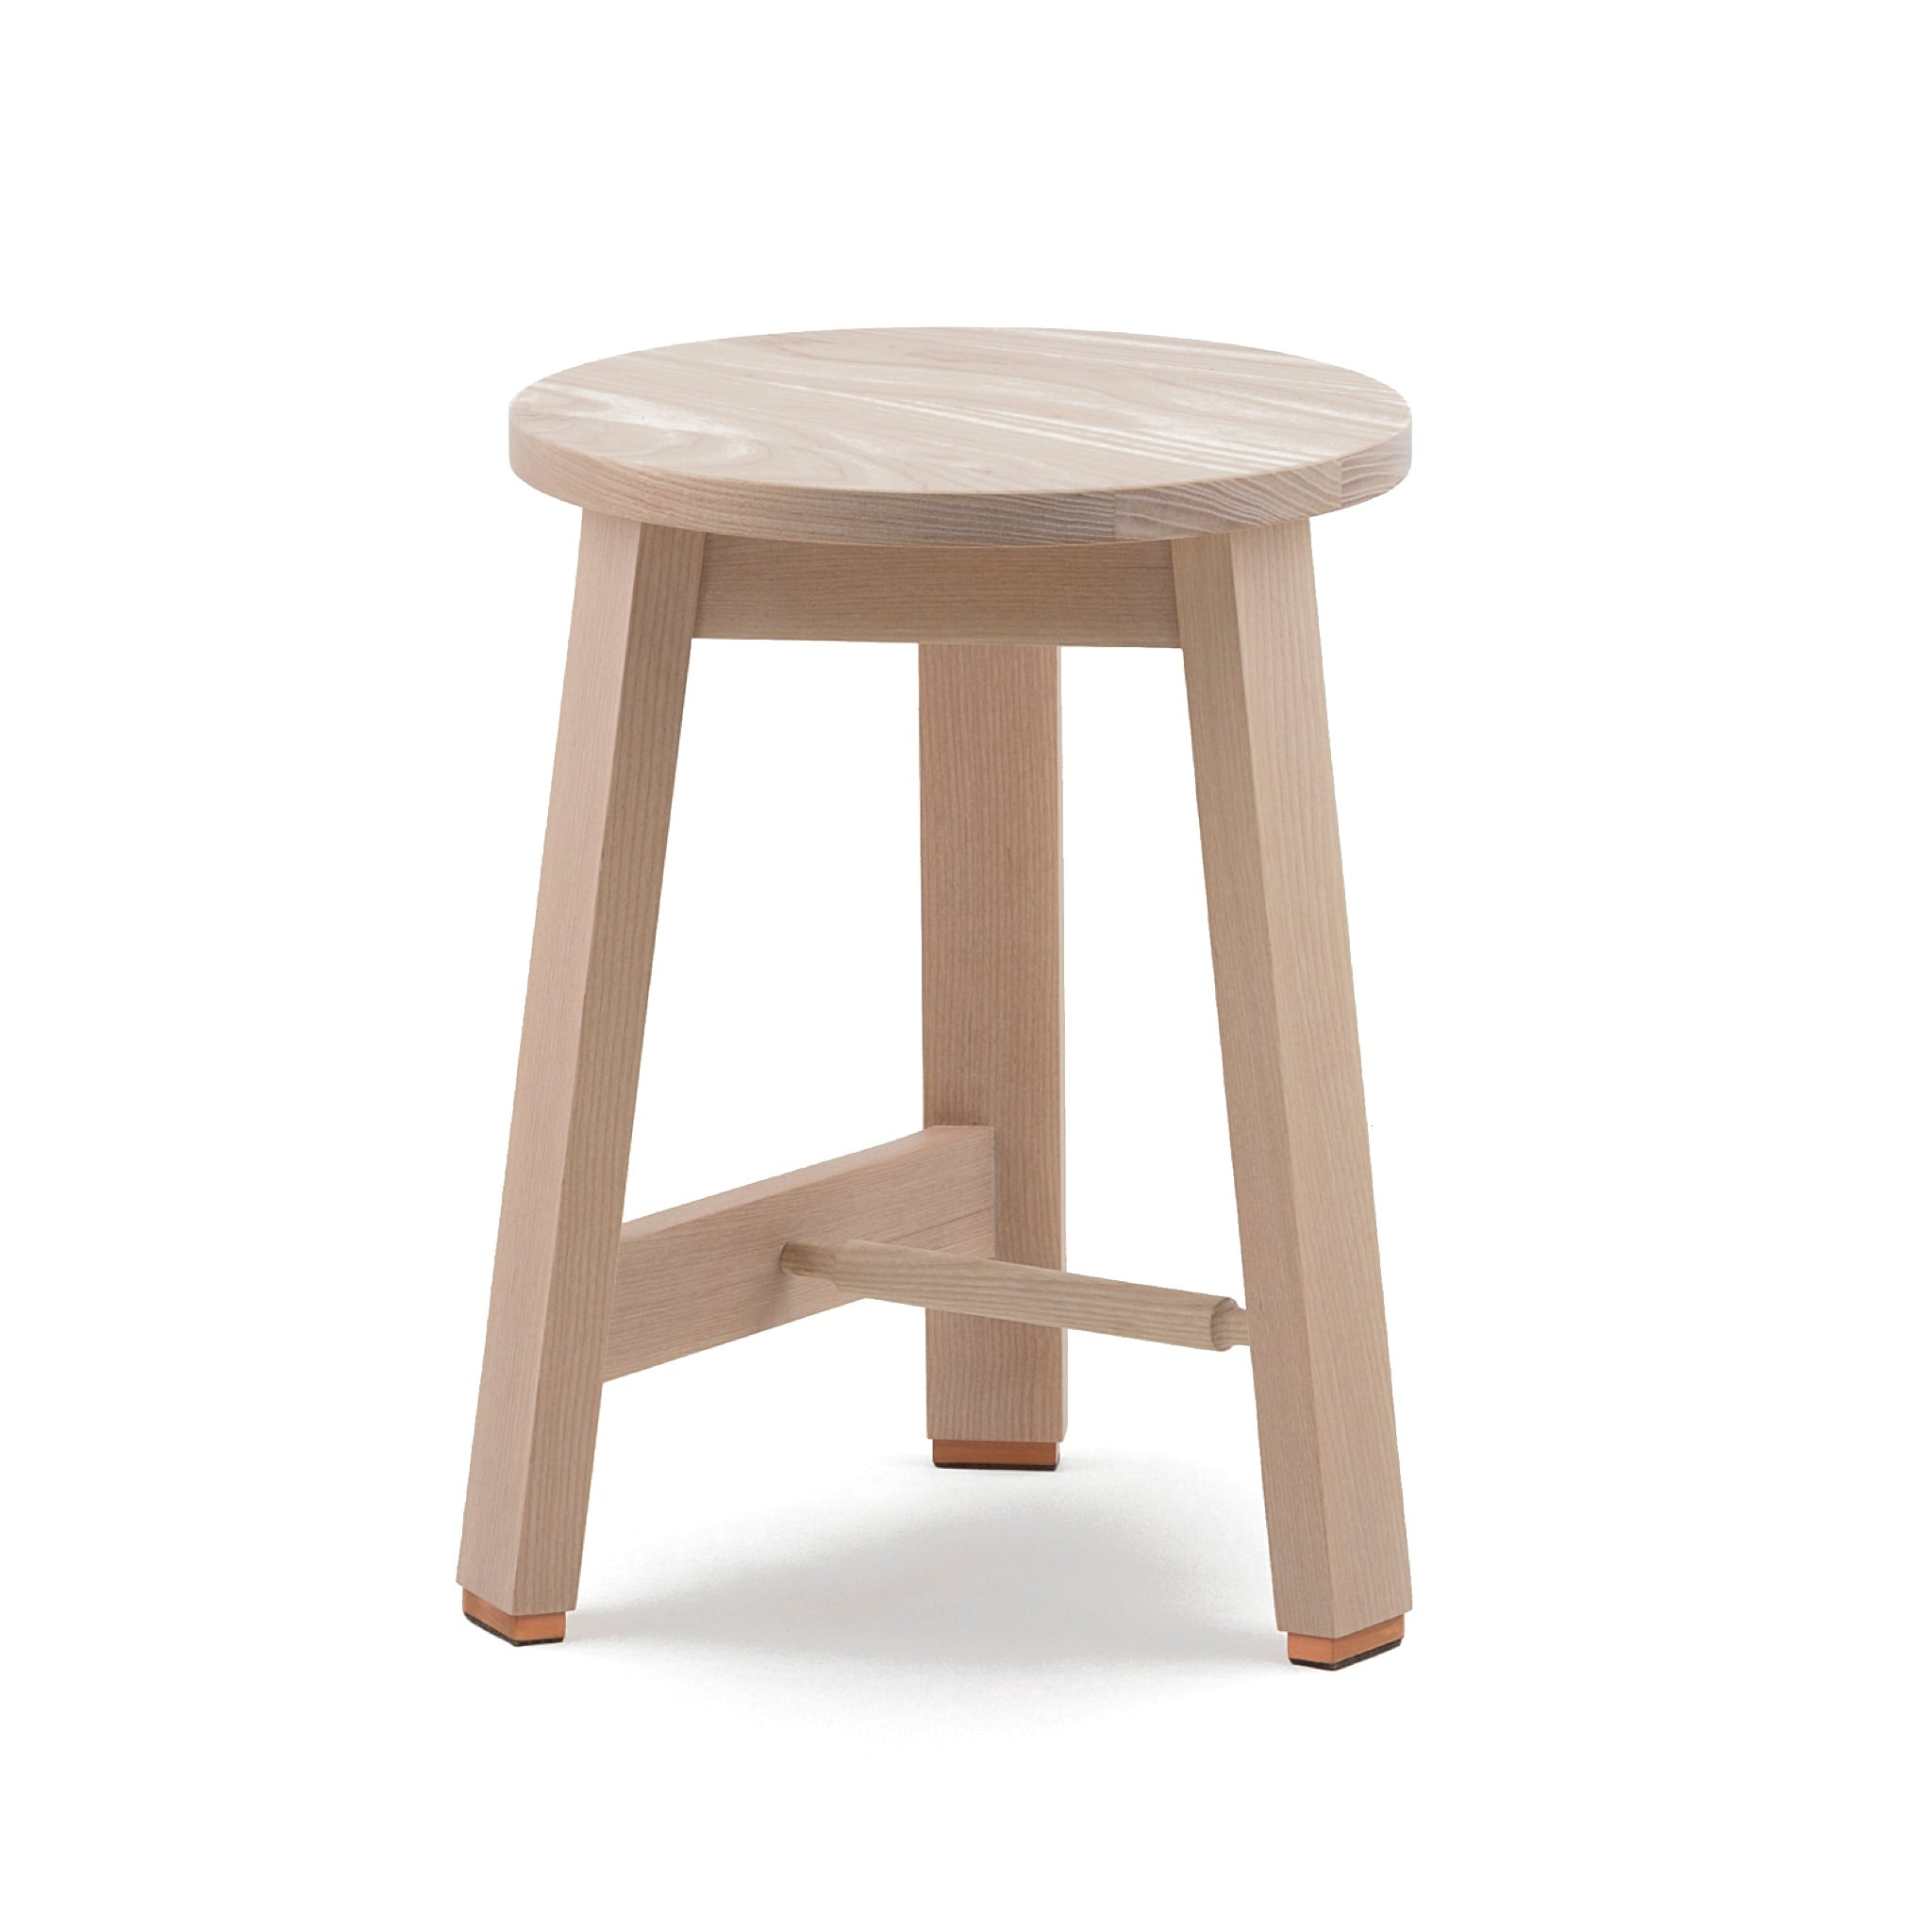 441 Stool by Ilse Crawford